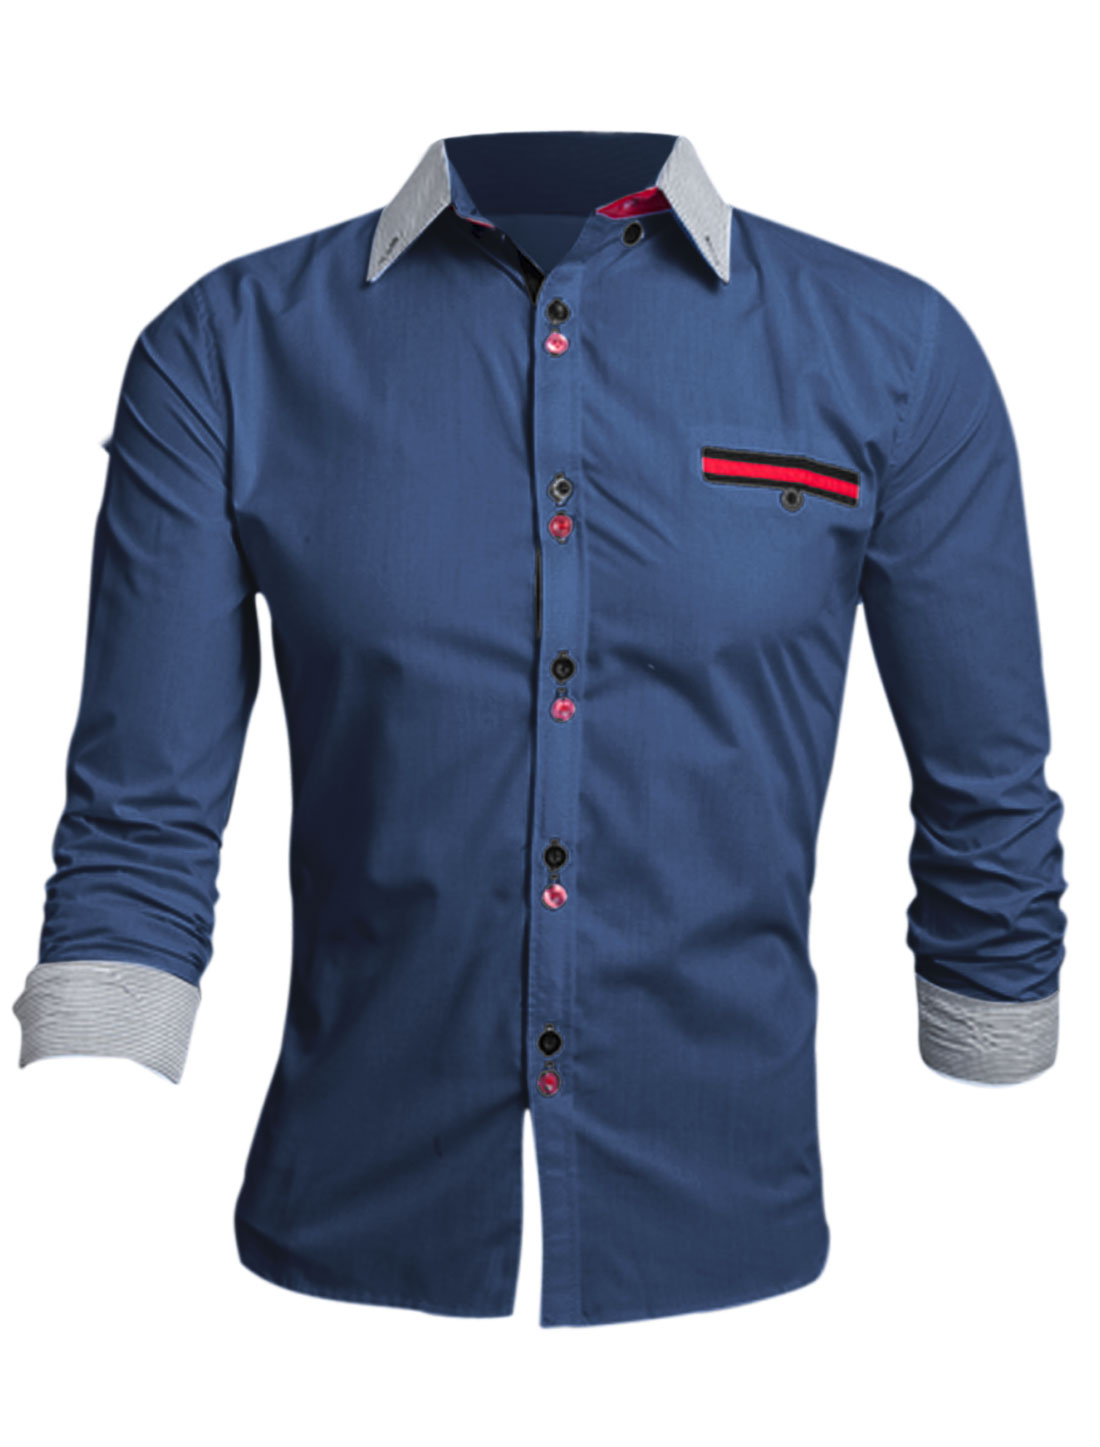 Men Navy Blue Single Breasted Long Sleeves One Mock Pocket Fashion Shirt M